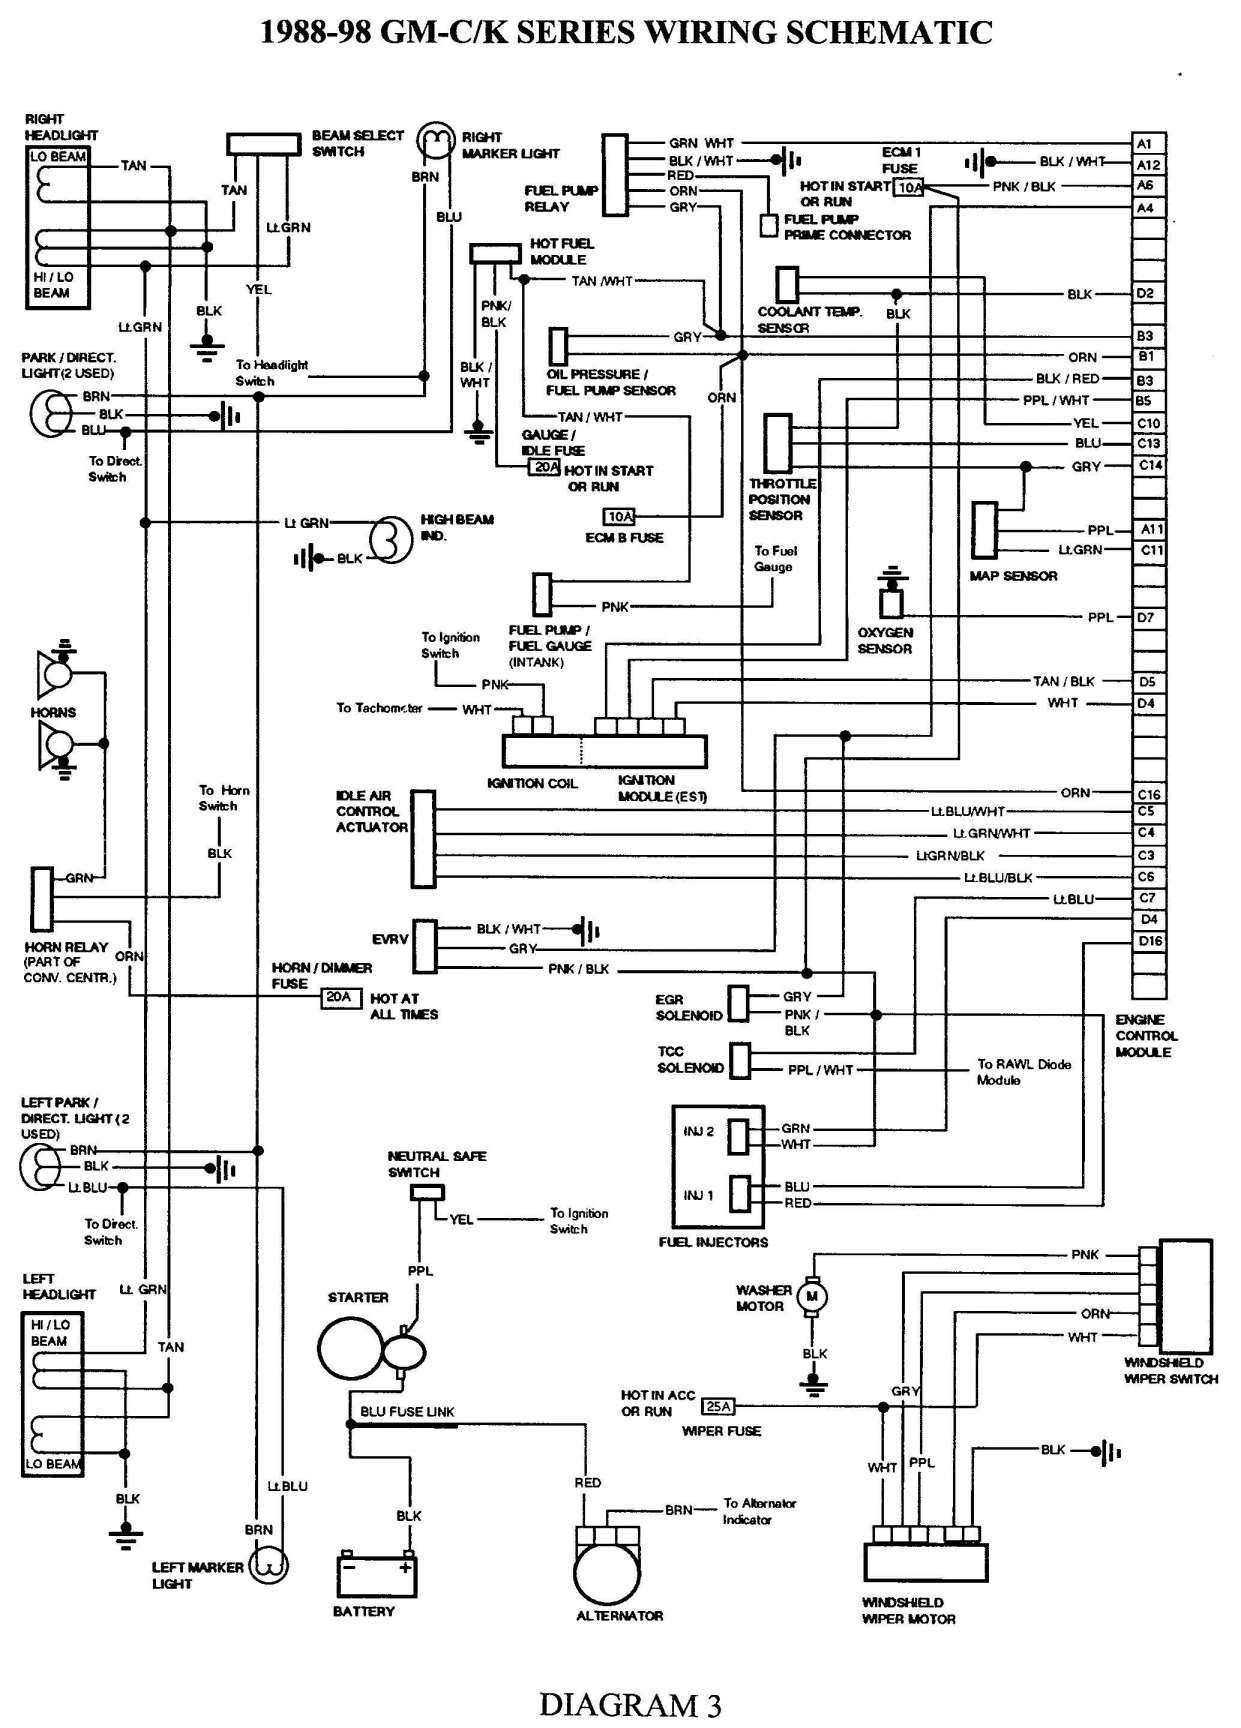 Chevy 305 Engine Wiring Diagram And Corvette Engine Wiring Harness Diagram Wiring Diagram Electrical Diagram Chevy 1500 Electrical Wiring Diagram